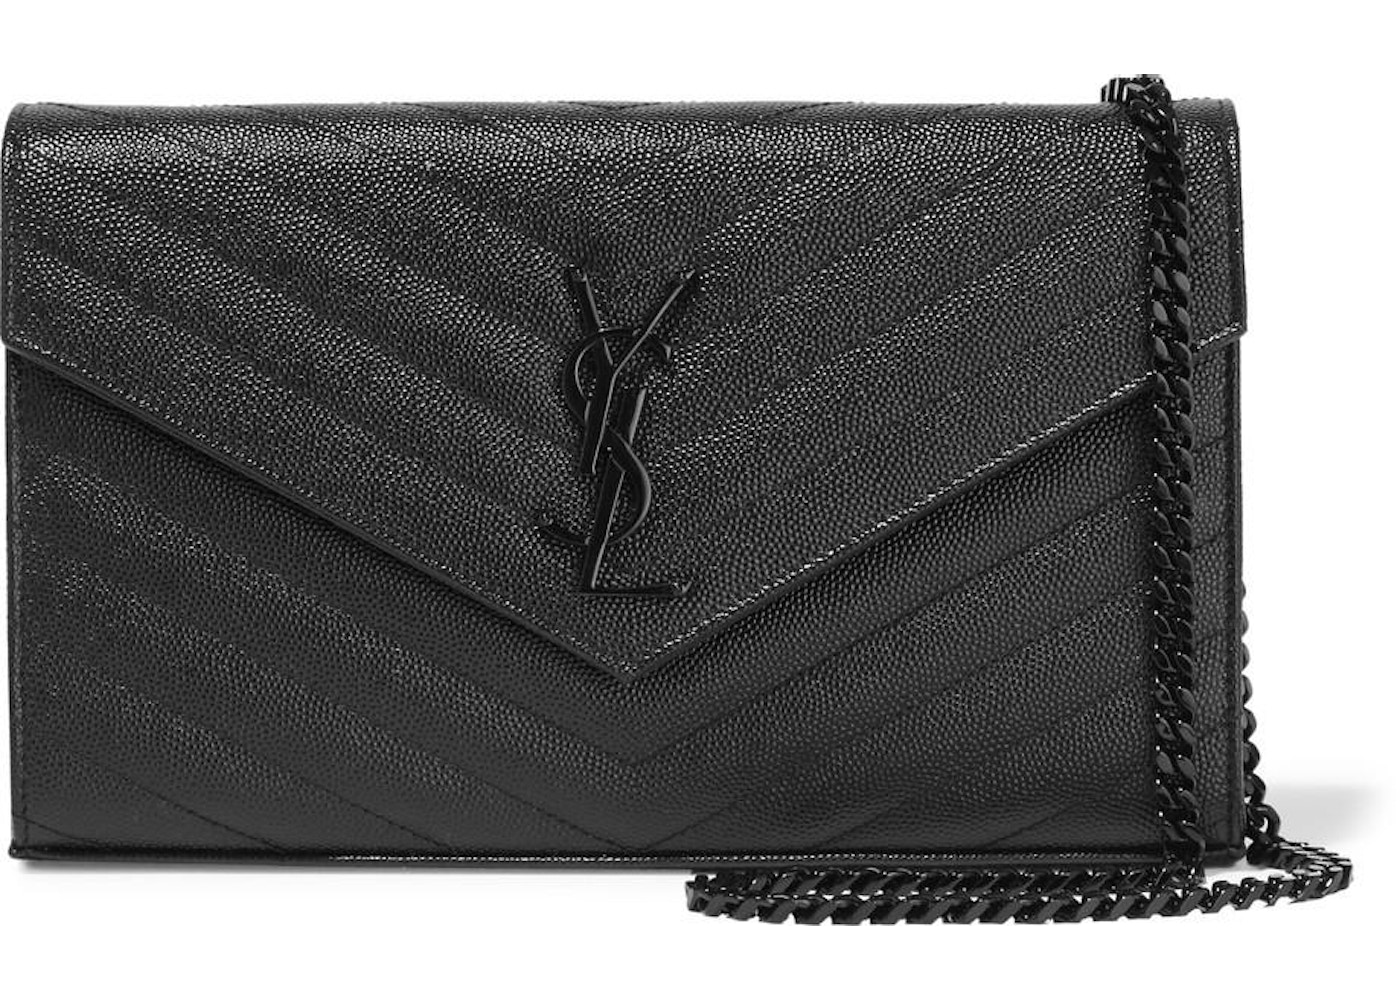 4266db624f7 Saint Laurent Monogram Envelope Chain Wallet Black. Black